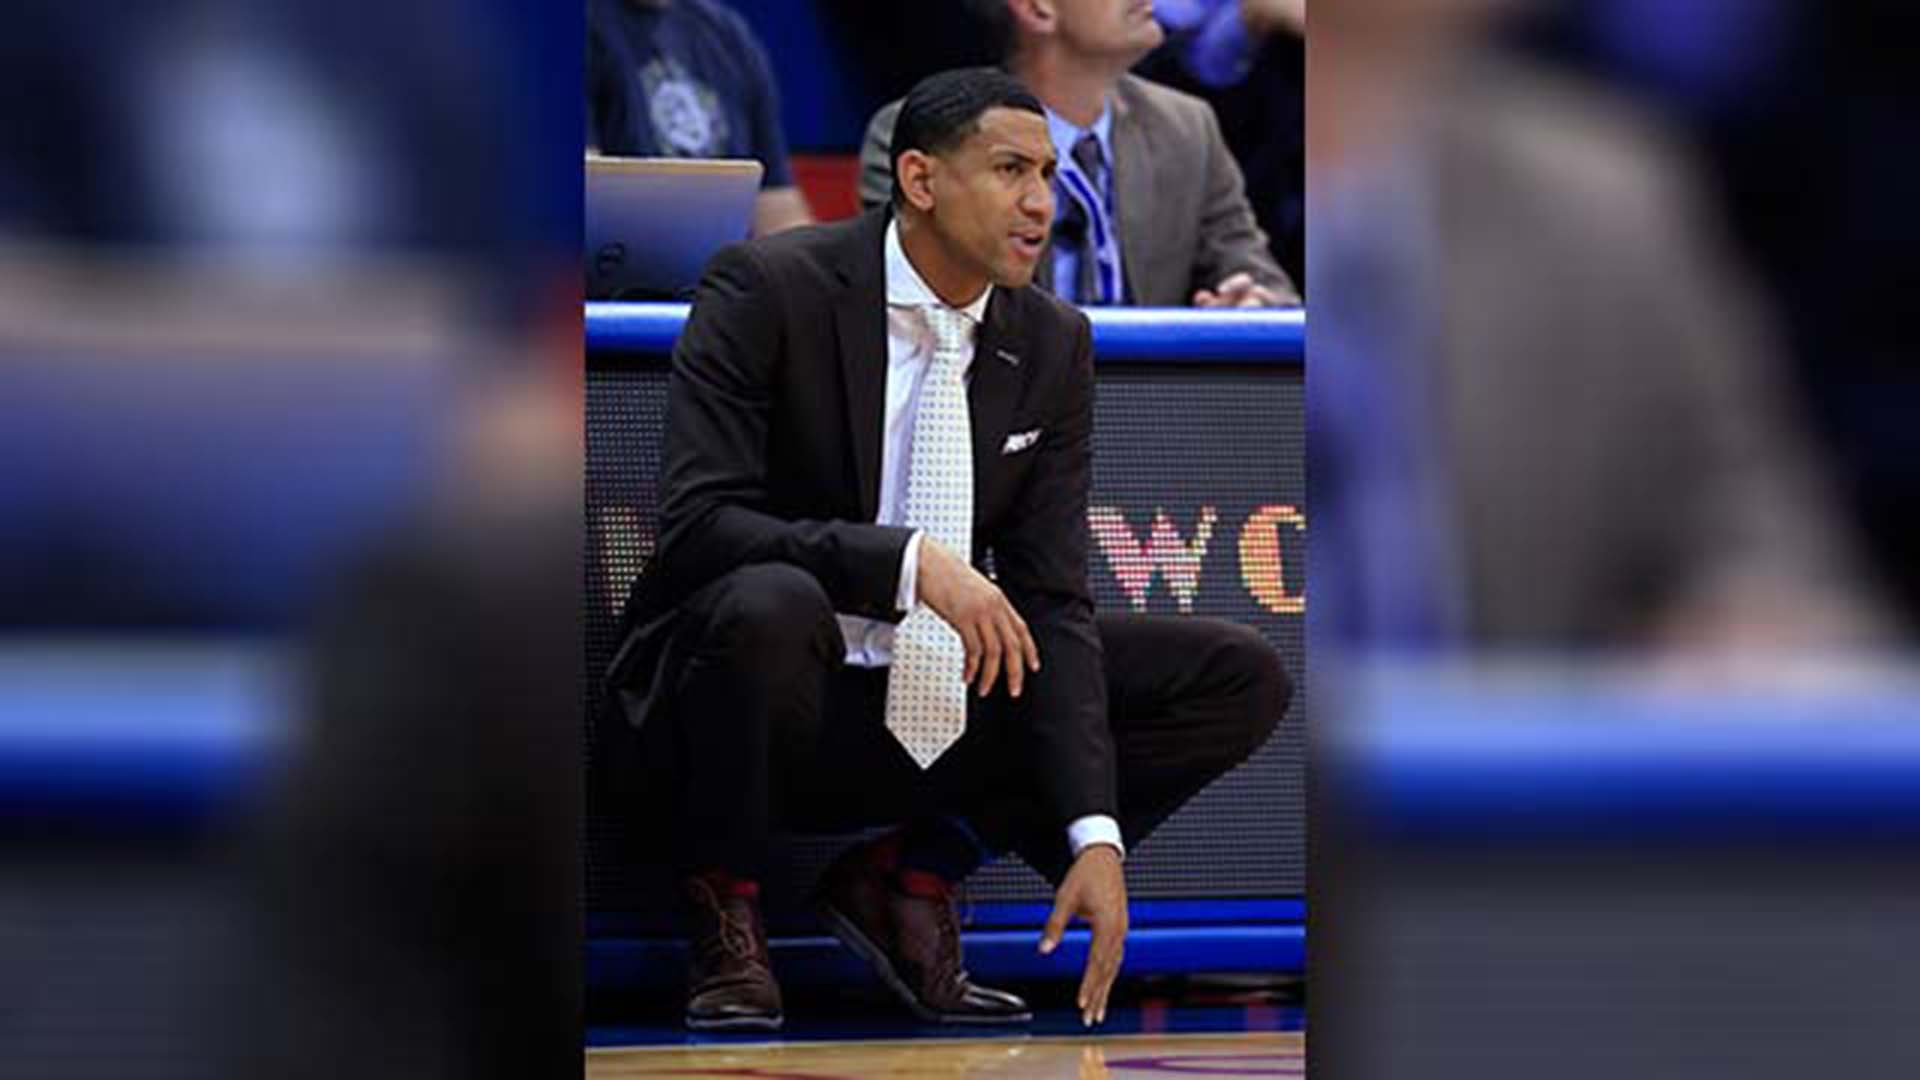 Dana Ford leaves Tennessee State for new coaching job | dana ford